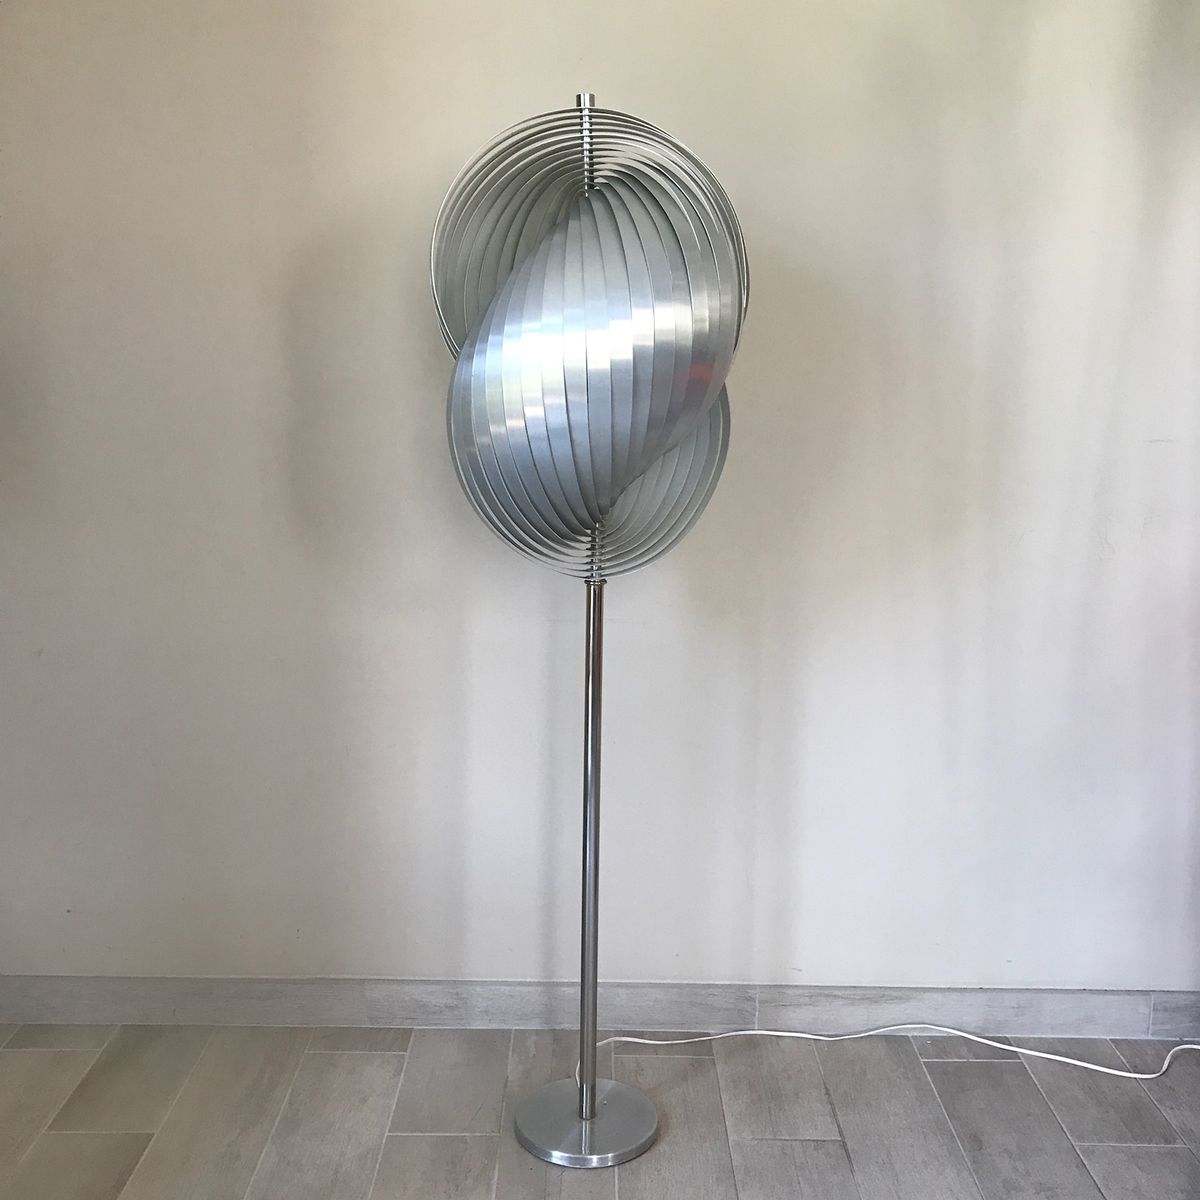 Floor lamp by henri mathieu 1970s for sale at pamono for 1970s floor lamps